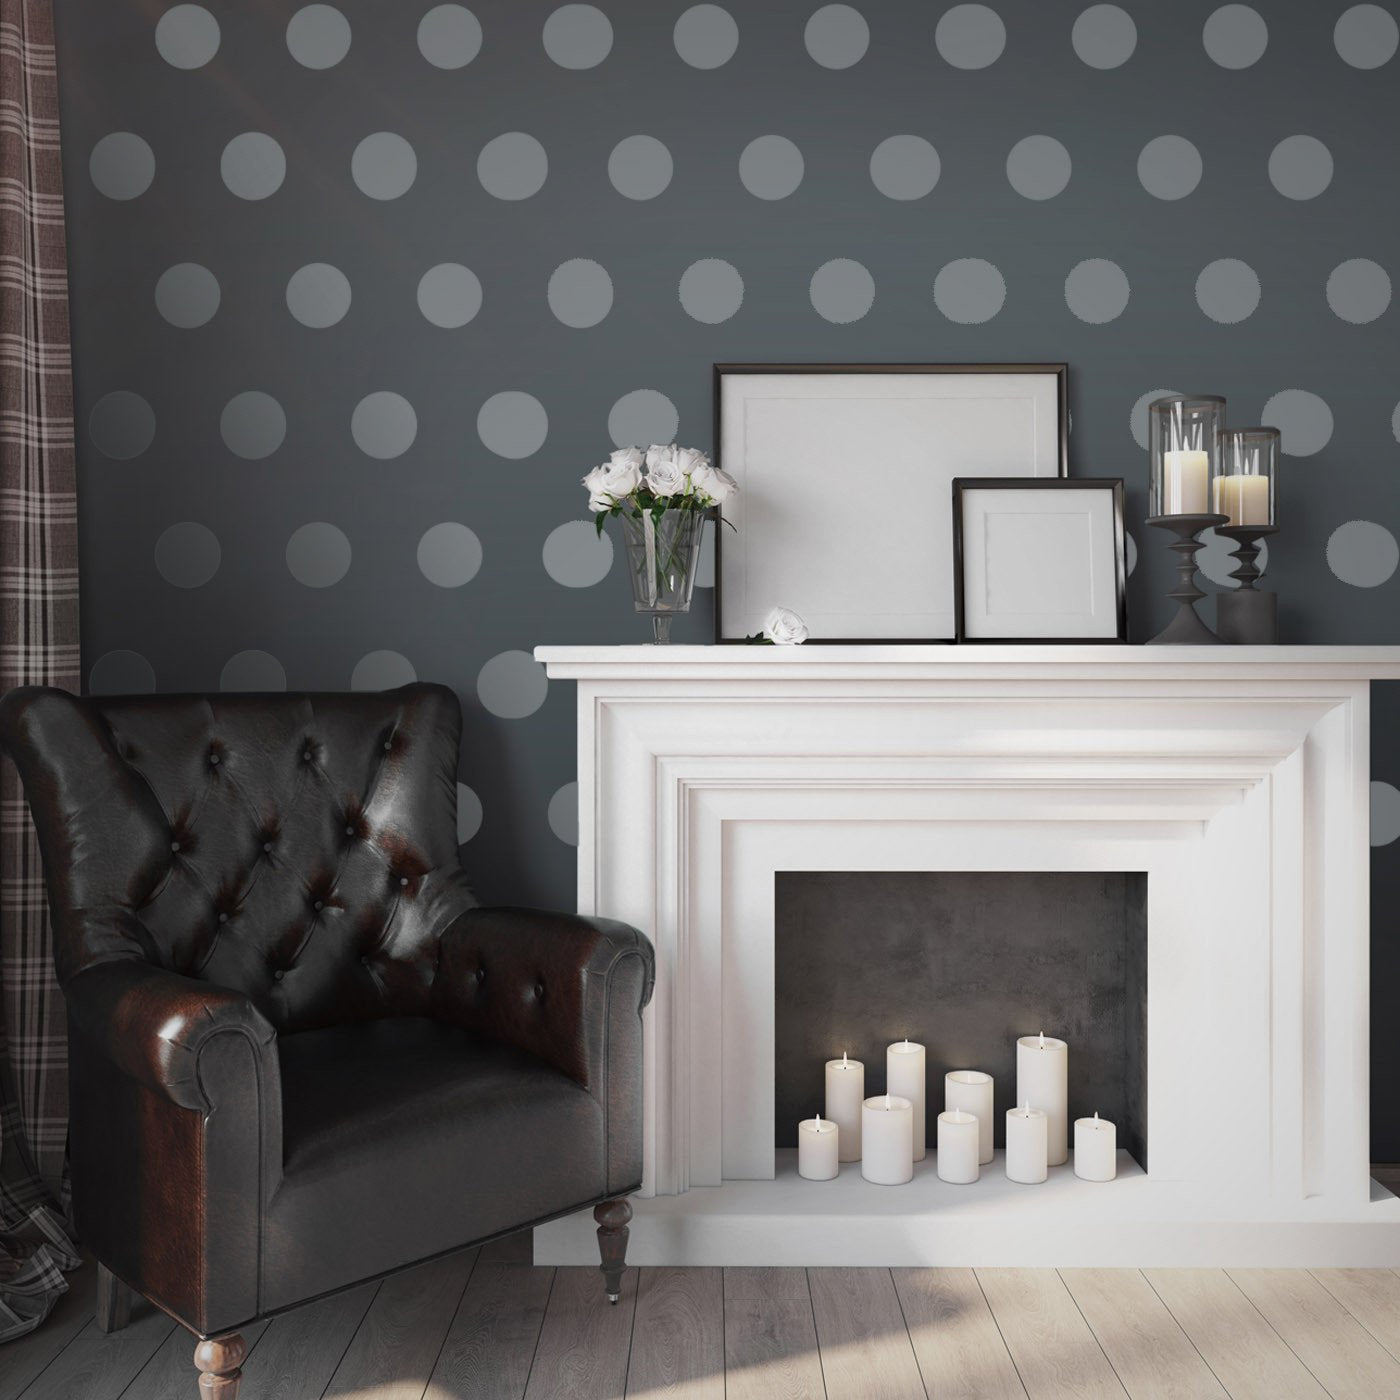 Large Polka Dot Pattern Wall Stencil in living room